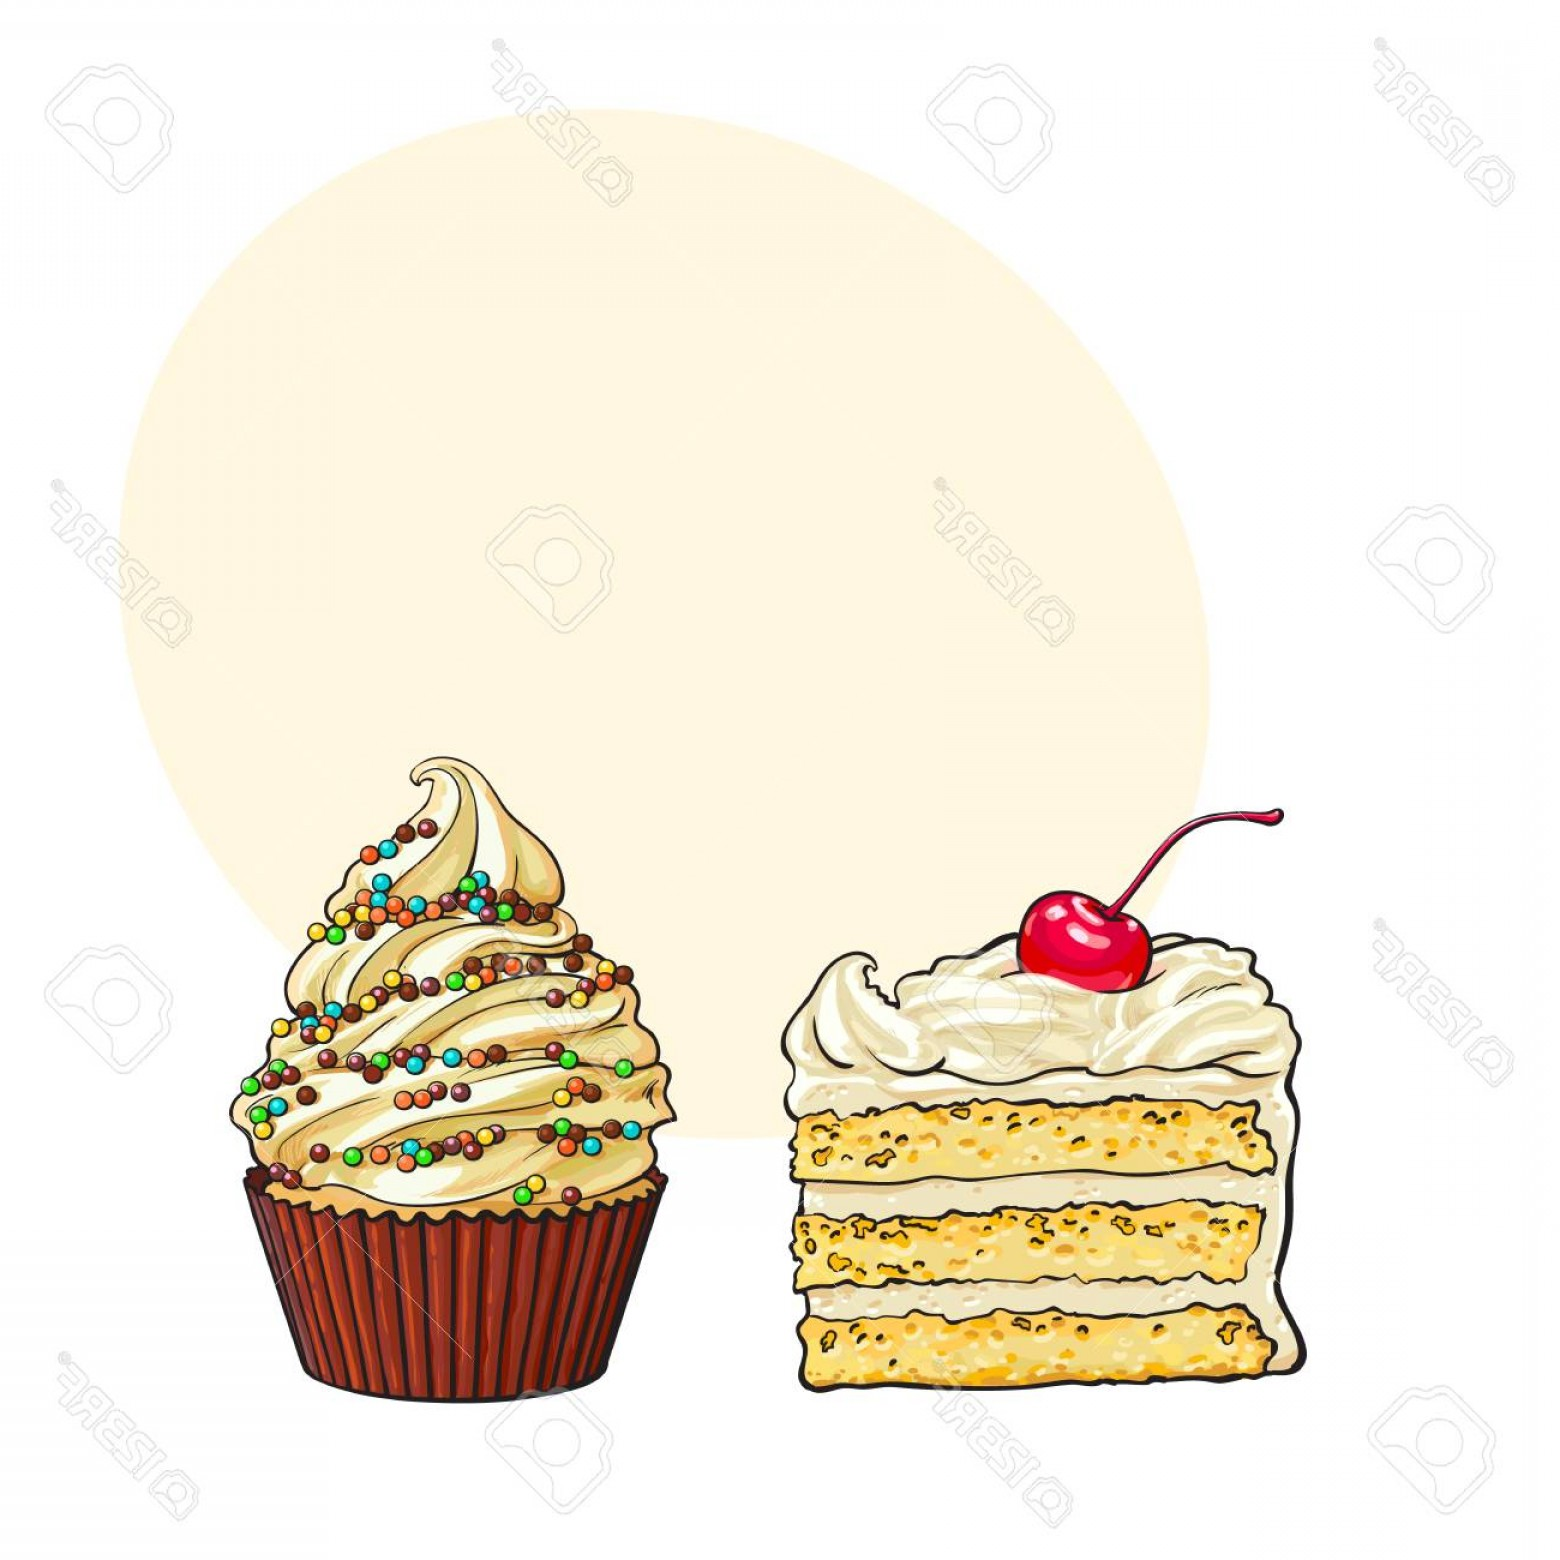 1560x1560 Photostock Vector Hand Drawn Desserts Cupcake And Piece Of Layered